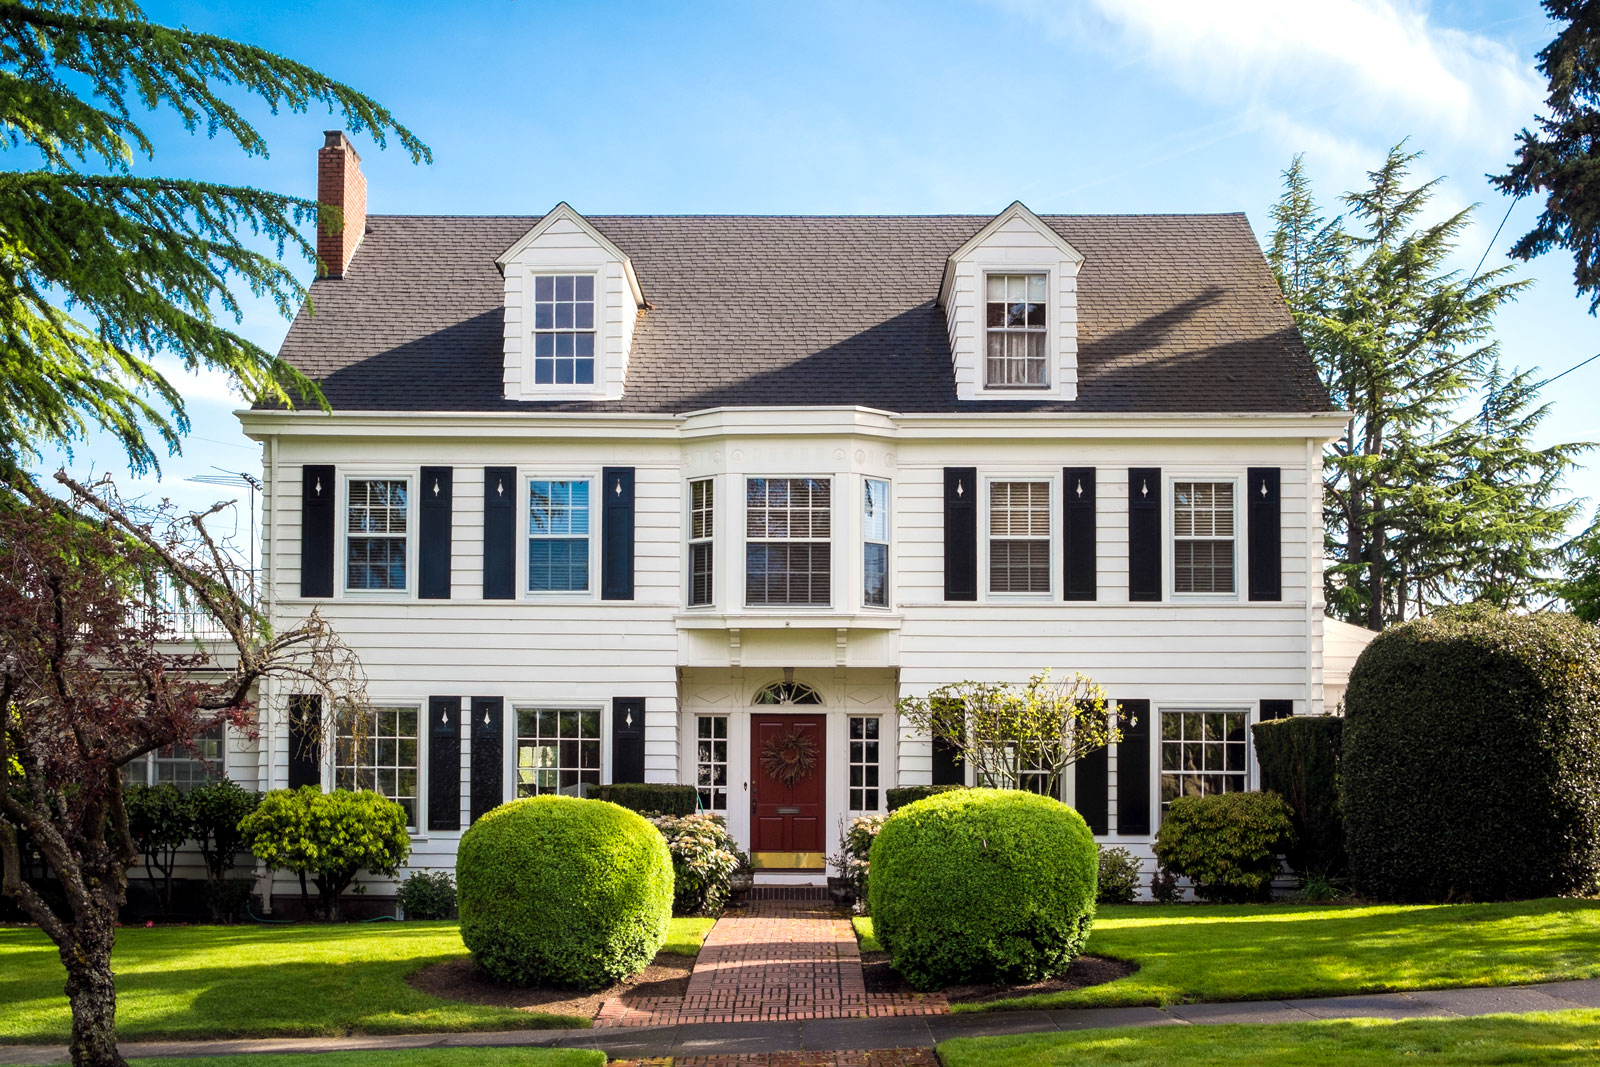 Buyer's Home Inspection, home inspection services